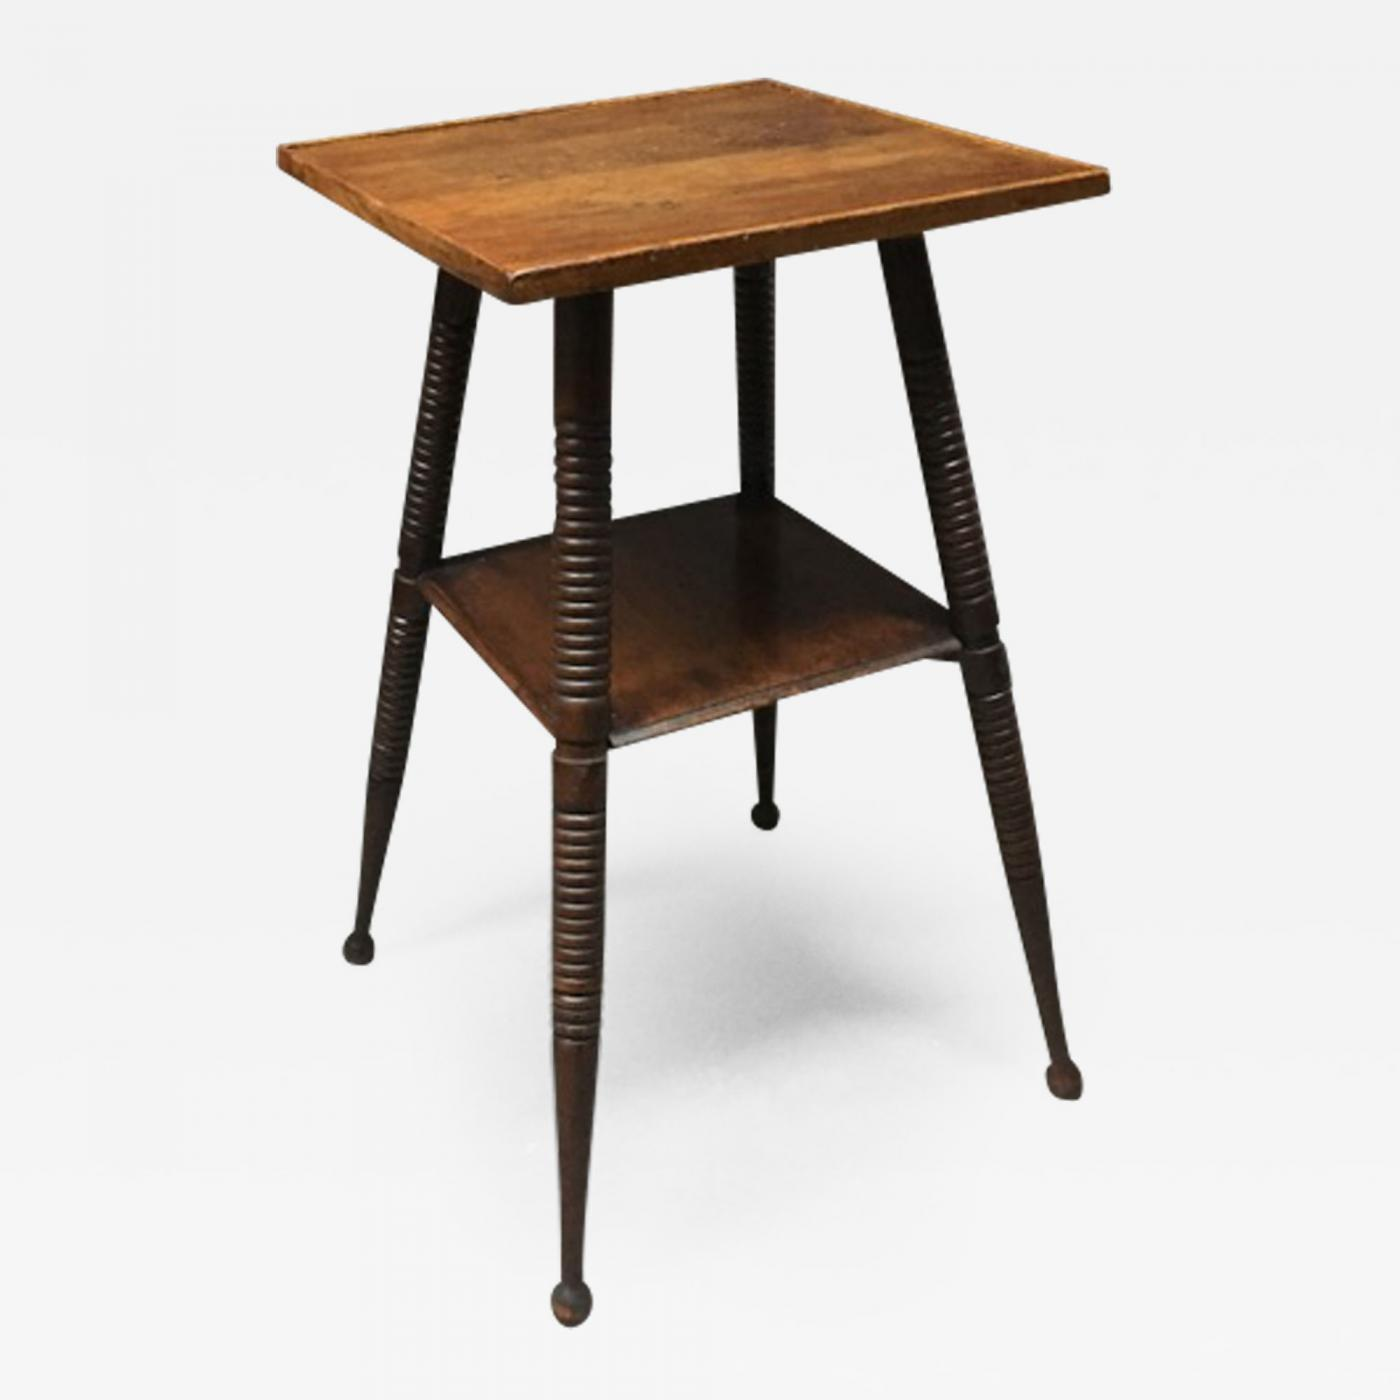 Arts and crafts tables - Listings Furniture Tables Pedestals A Turned Arts Crafts